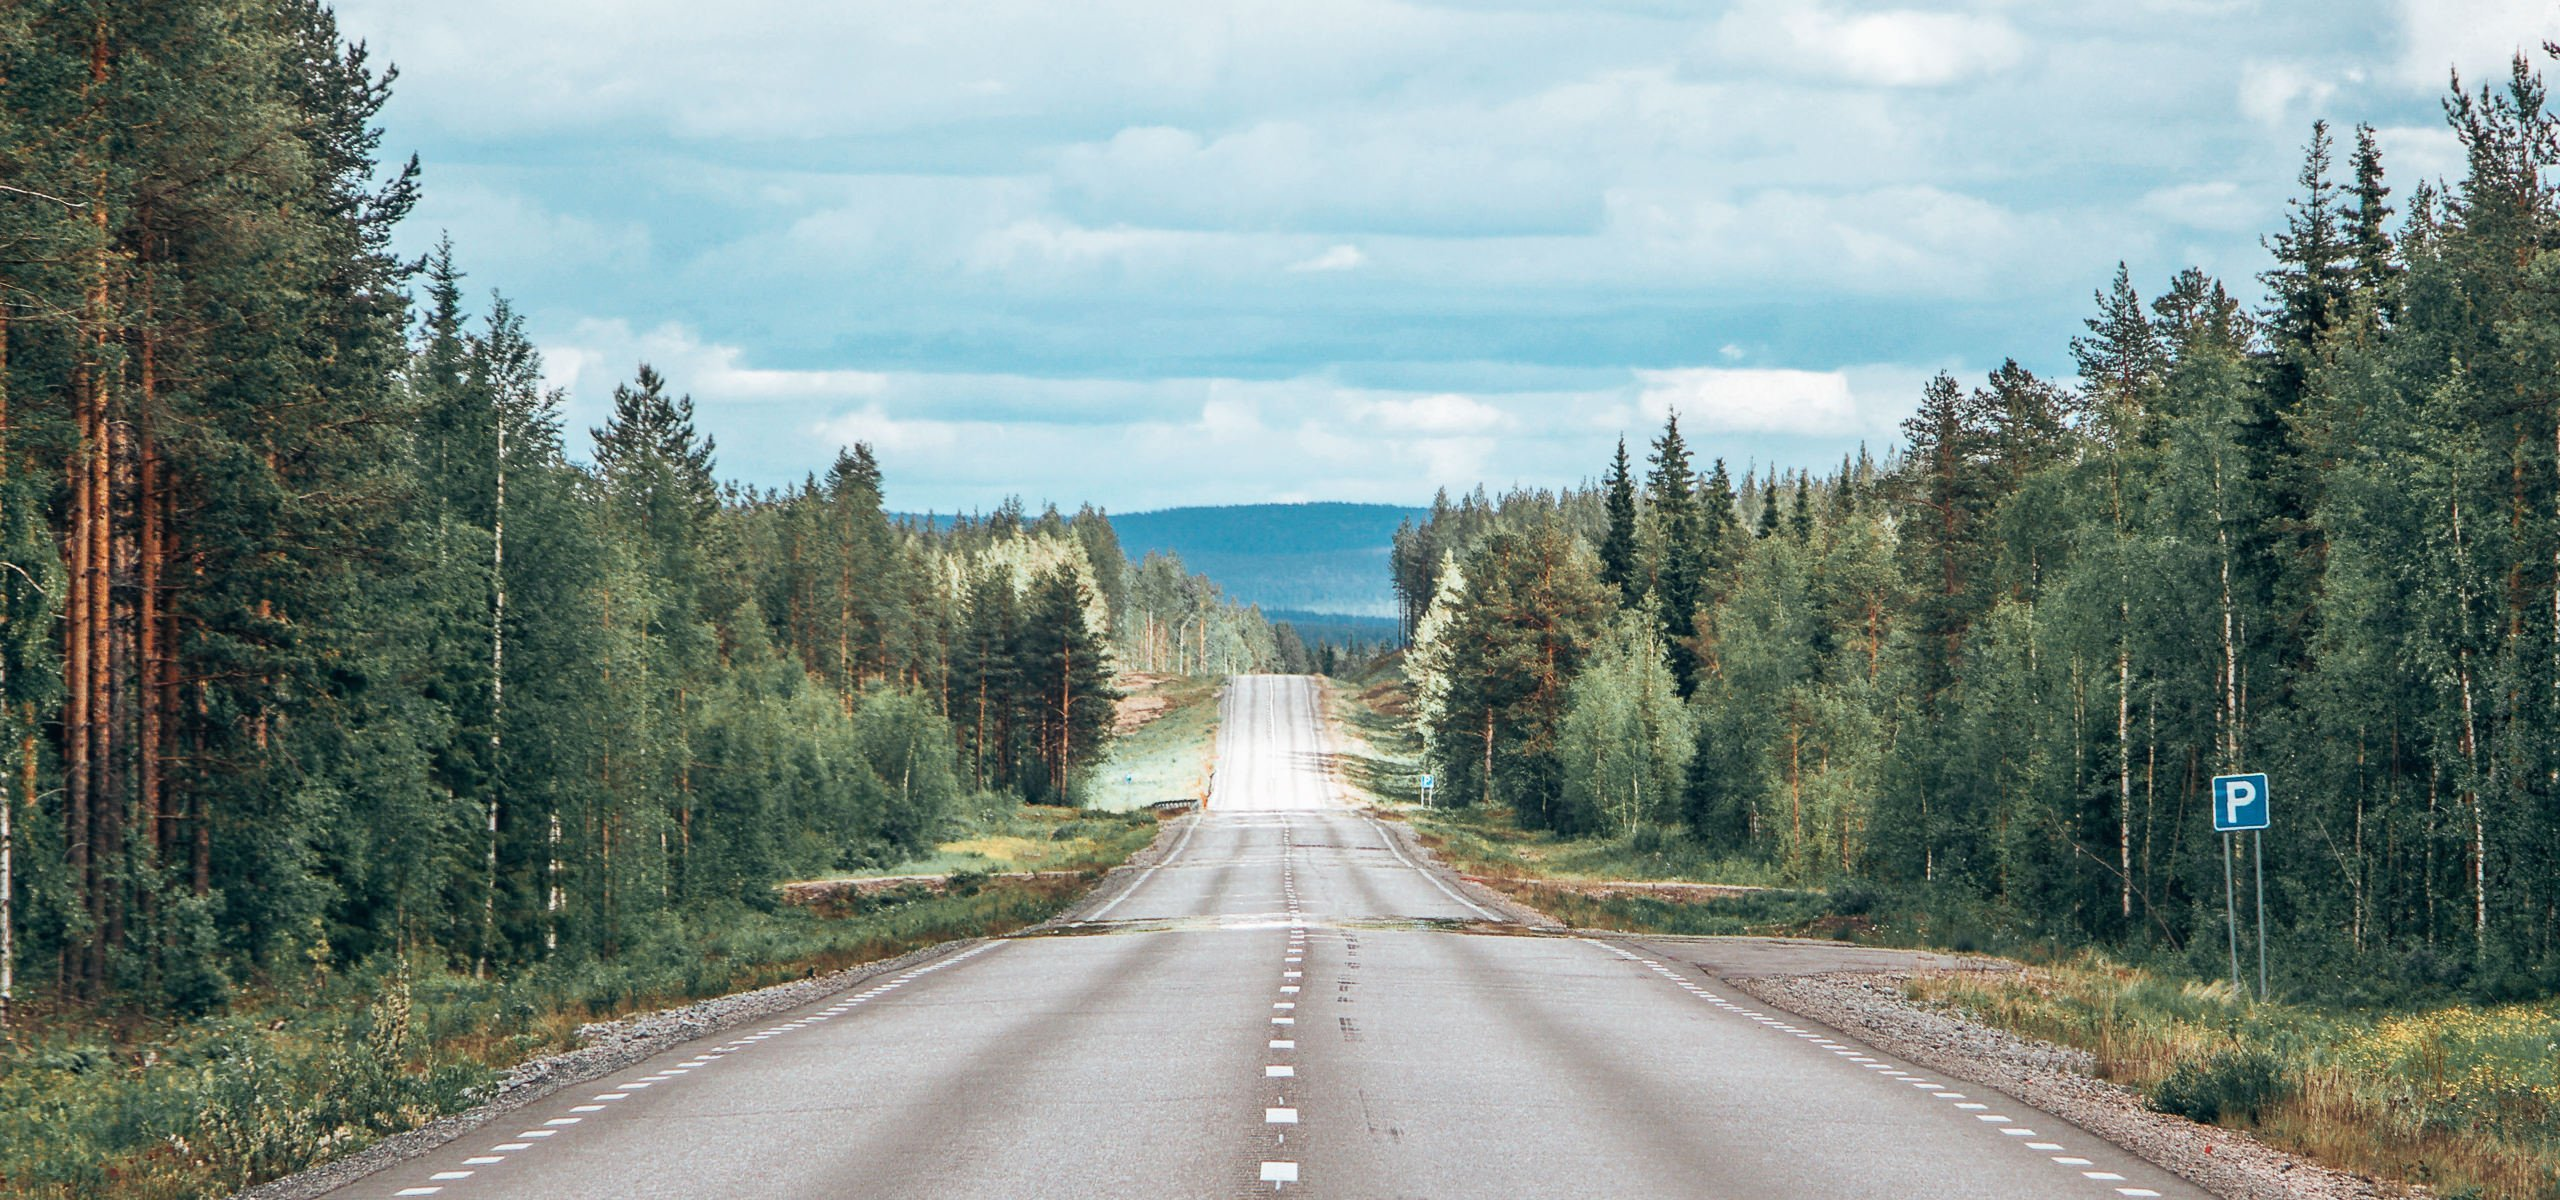 Long stretch of road with pine trees on each side in Scandinavia, Campervan trip